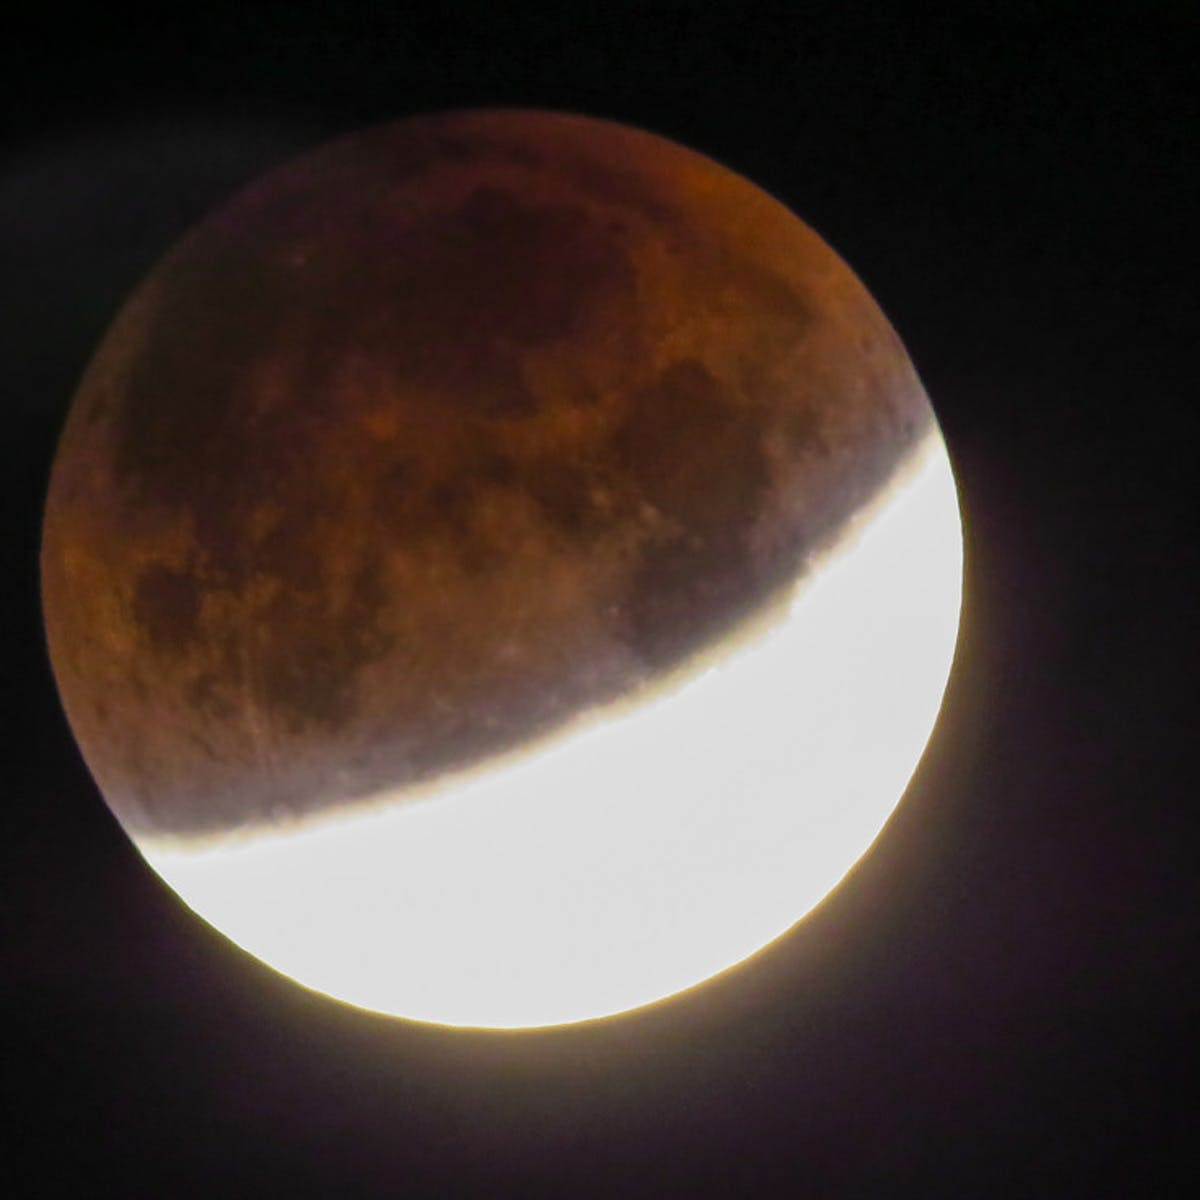 Total Lunar Eclipse: Here's the Next Chance to See the Celestial Event